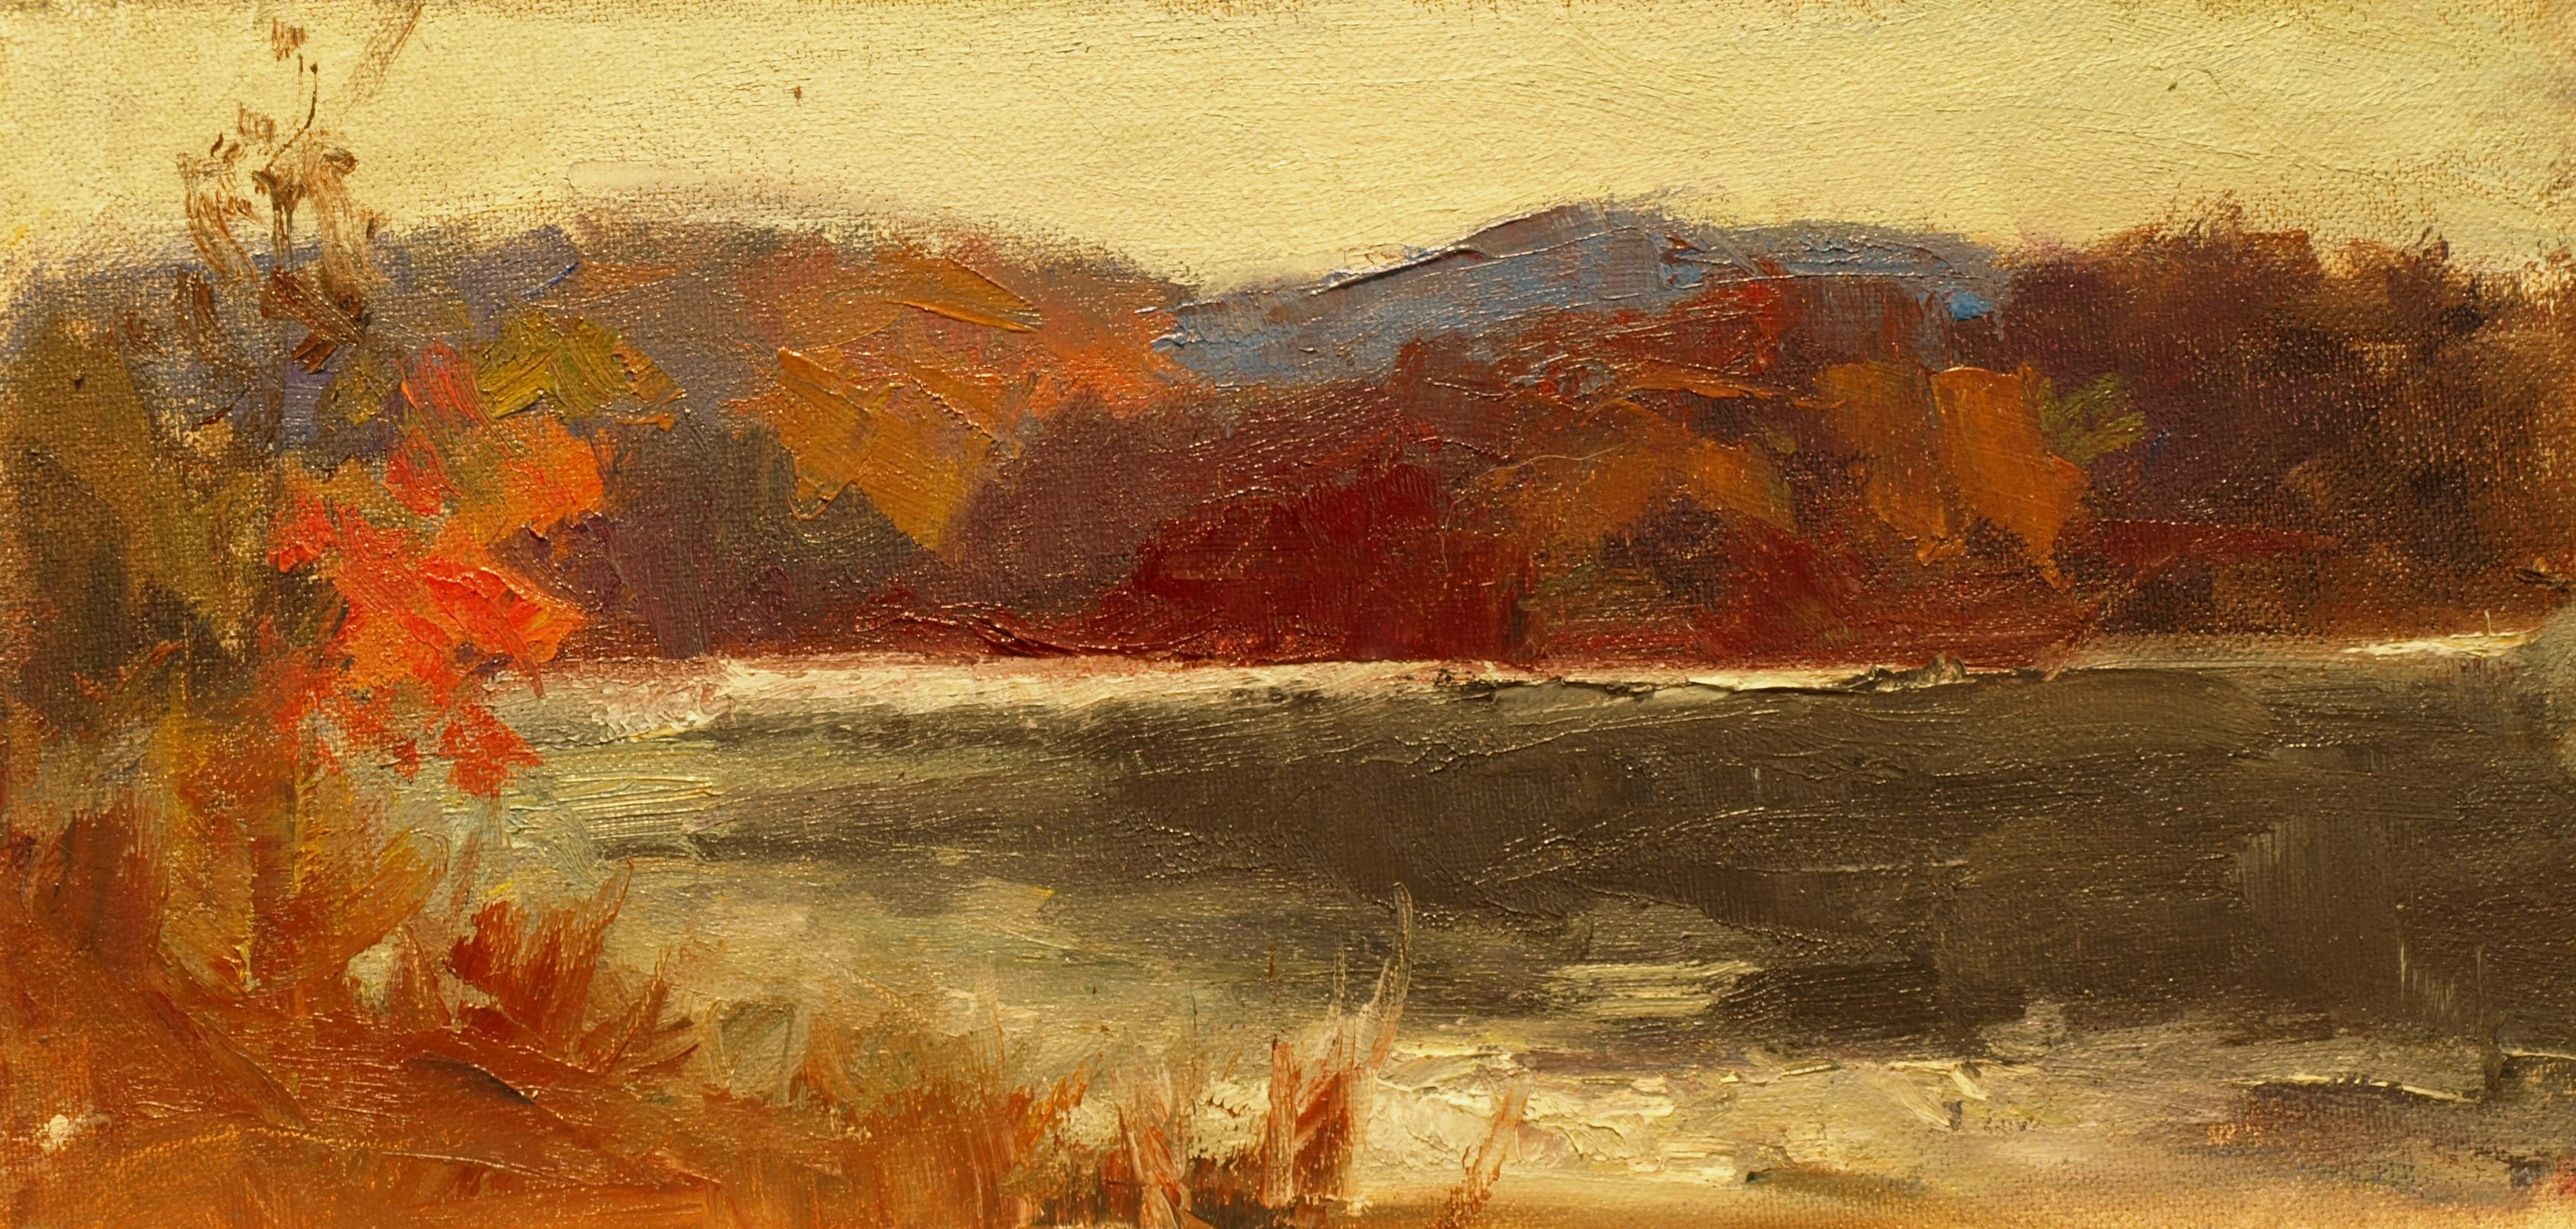 Red Tree, Oil on Canvas on Panel, 6 x 12 Inches, by Susan Grisell, $200